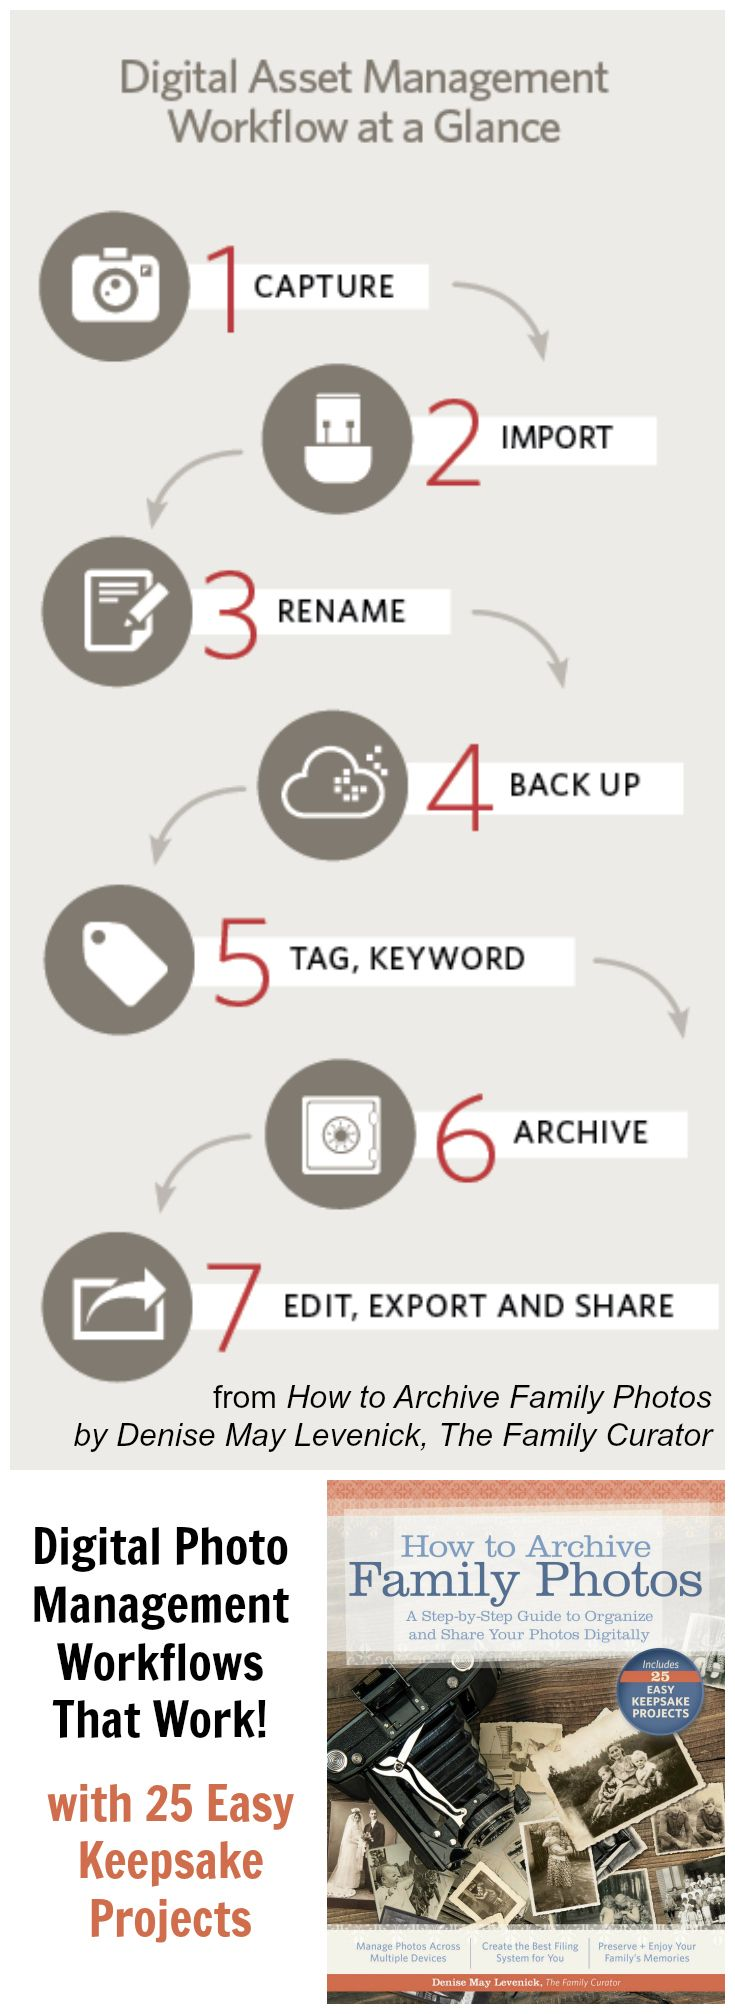 DAM Workflows That Really Work - Home - Family Curator